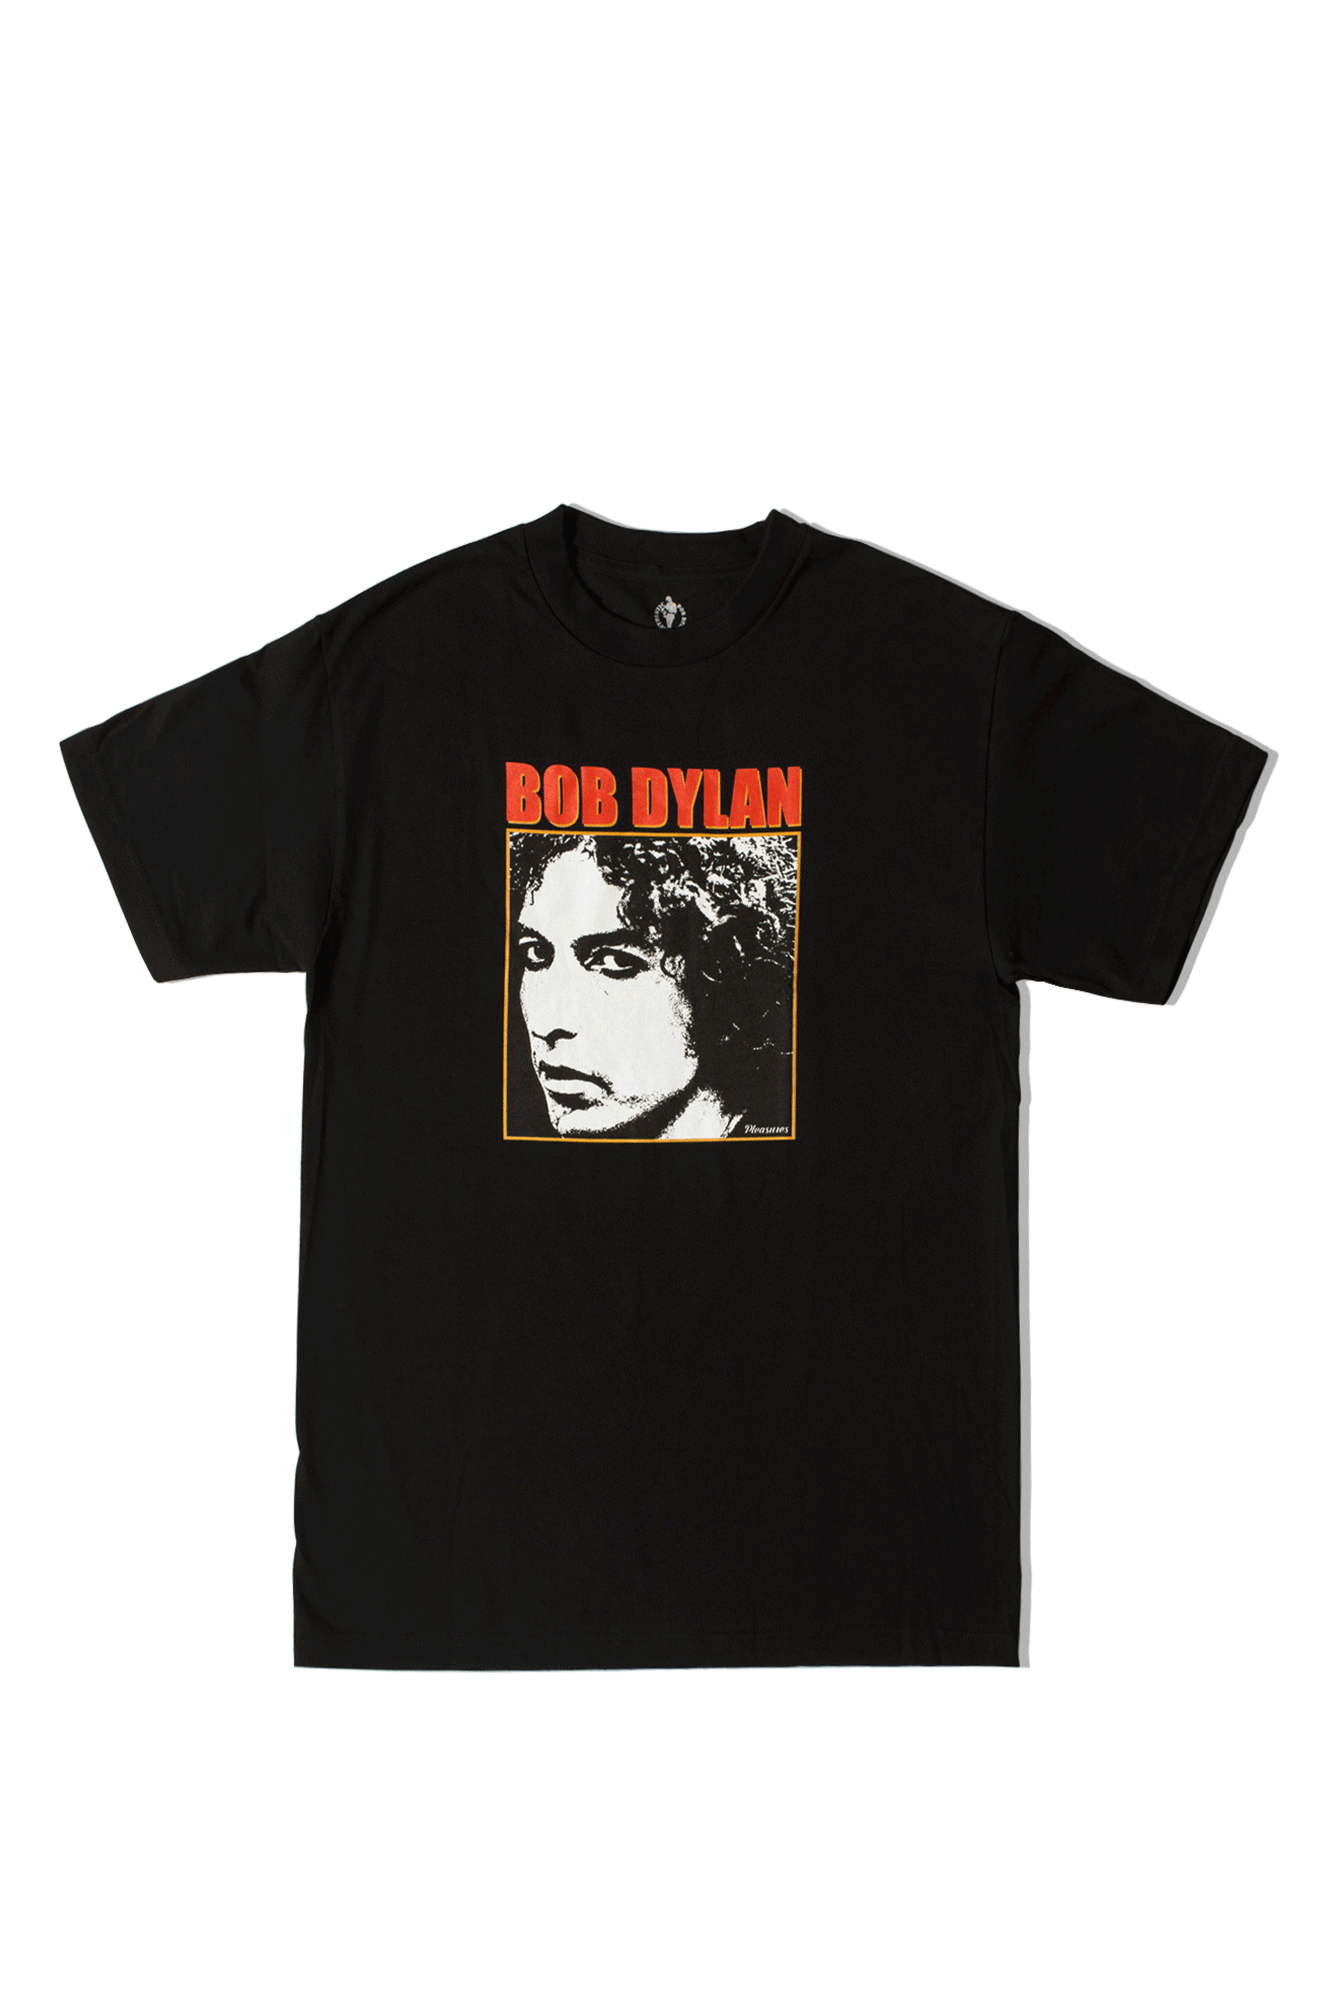 Bob Dylan Home T-Shirt Black